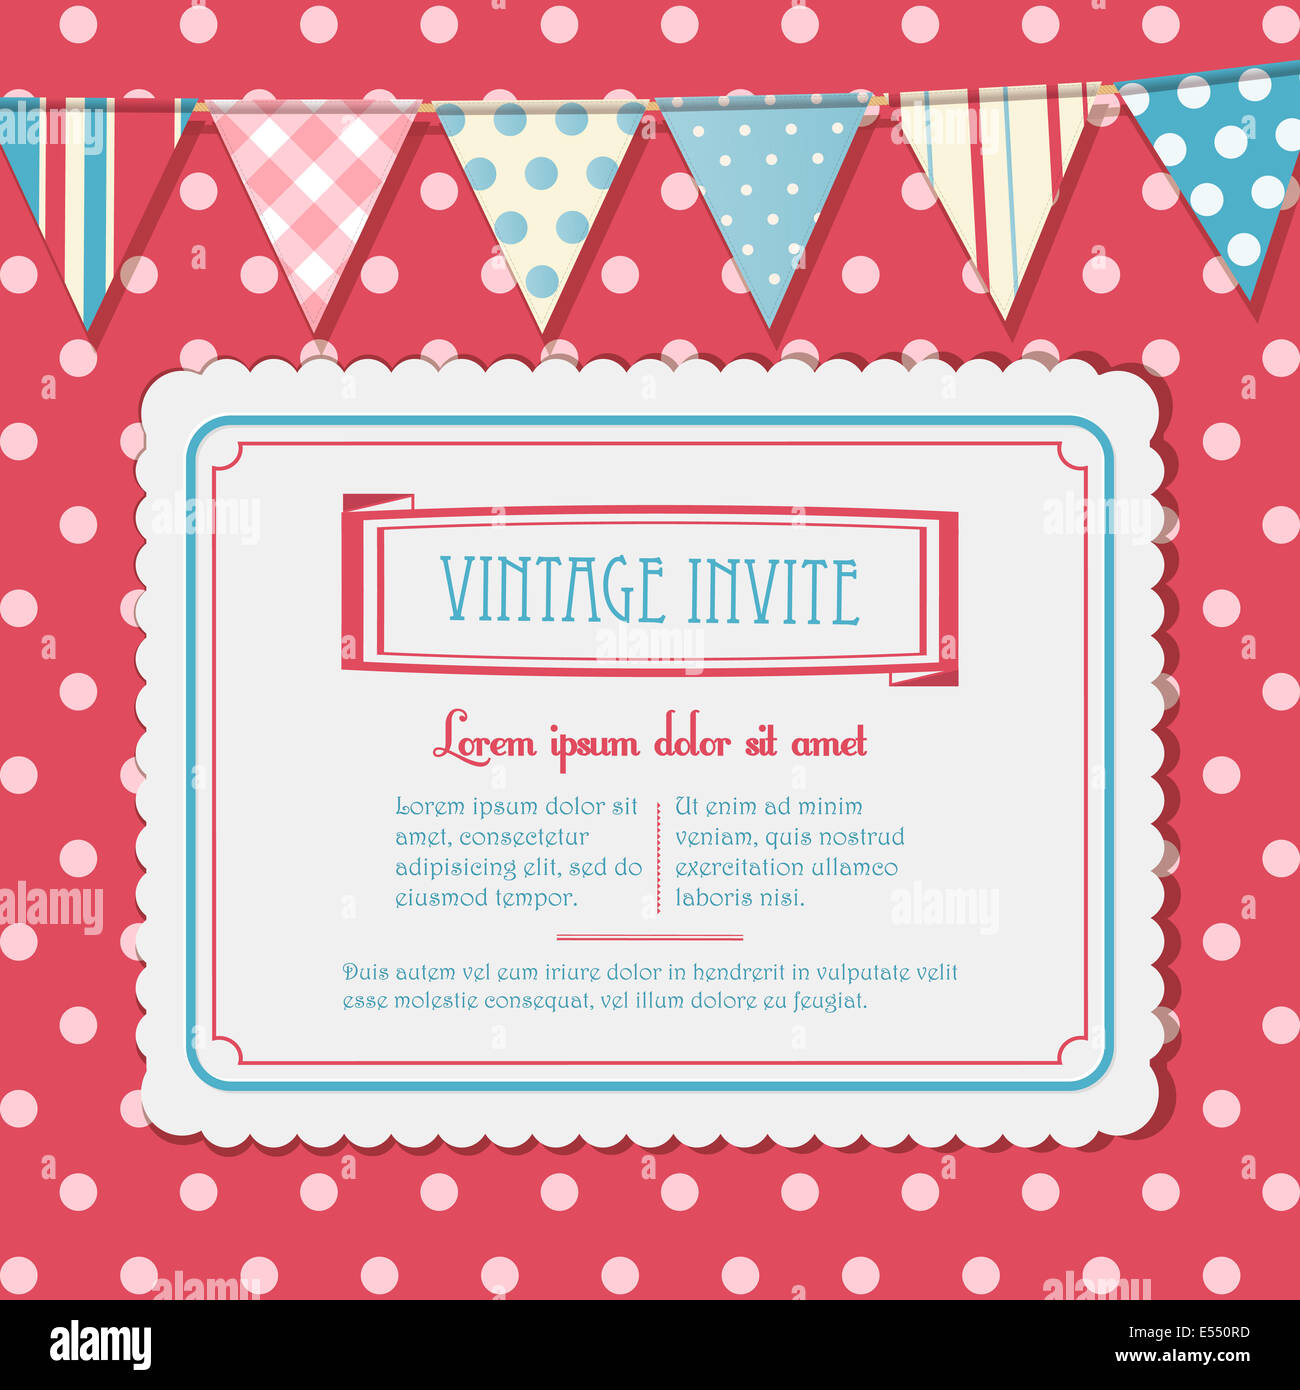 Vintage Vector Invite on a Pink Polka Dot Background with Bunting - Stock Image